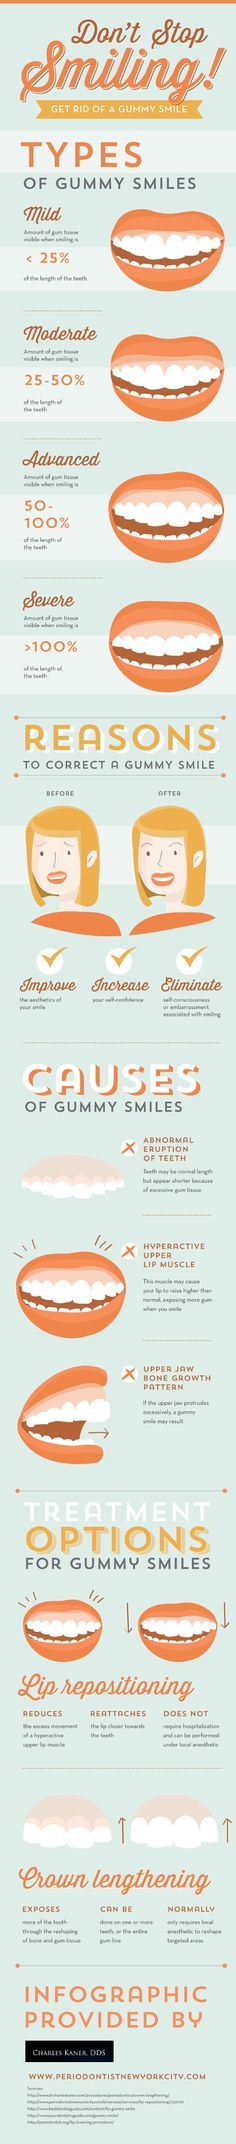 Gummy smiles can range from mild with a small amount of visible gum tissue to severe, where the gum tissue covers 100% of the teeth. Luckily, patients who have gummy smiles can improve their smiles' aesthetic appearance through crown lengthening or lip repositioning treatment. Learn more in this infographic.